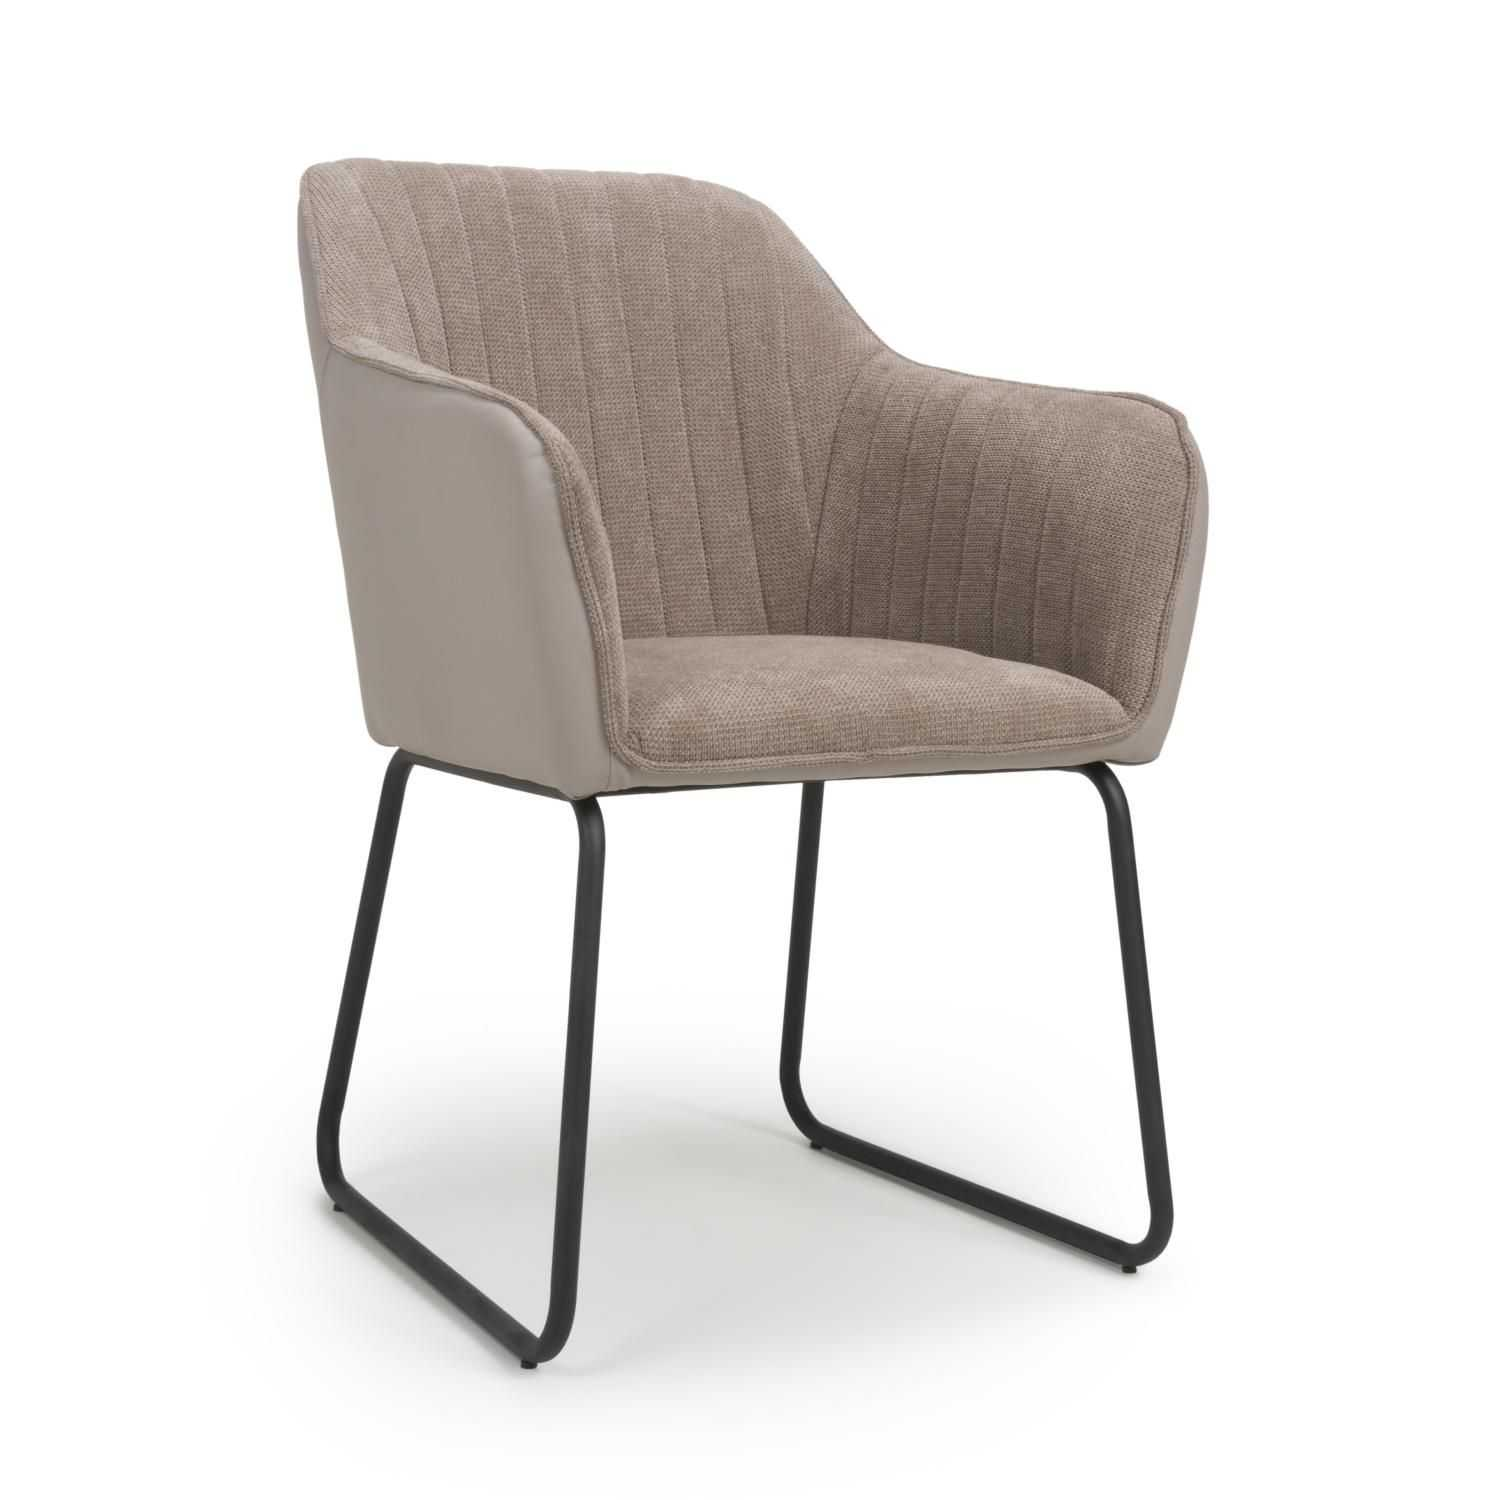 Celeste Chenille And Leather Effect Beige Dining Chair by Shankar